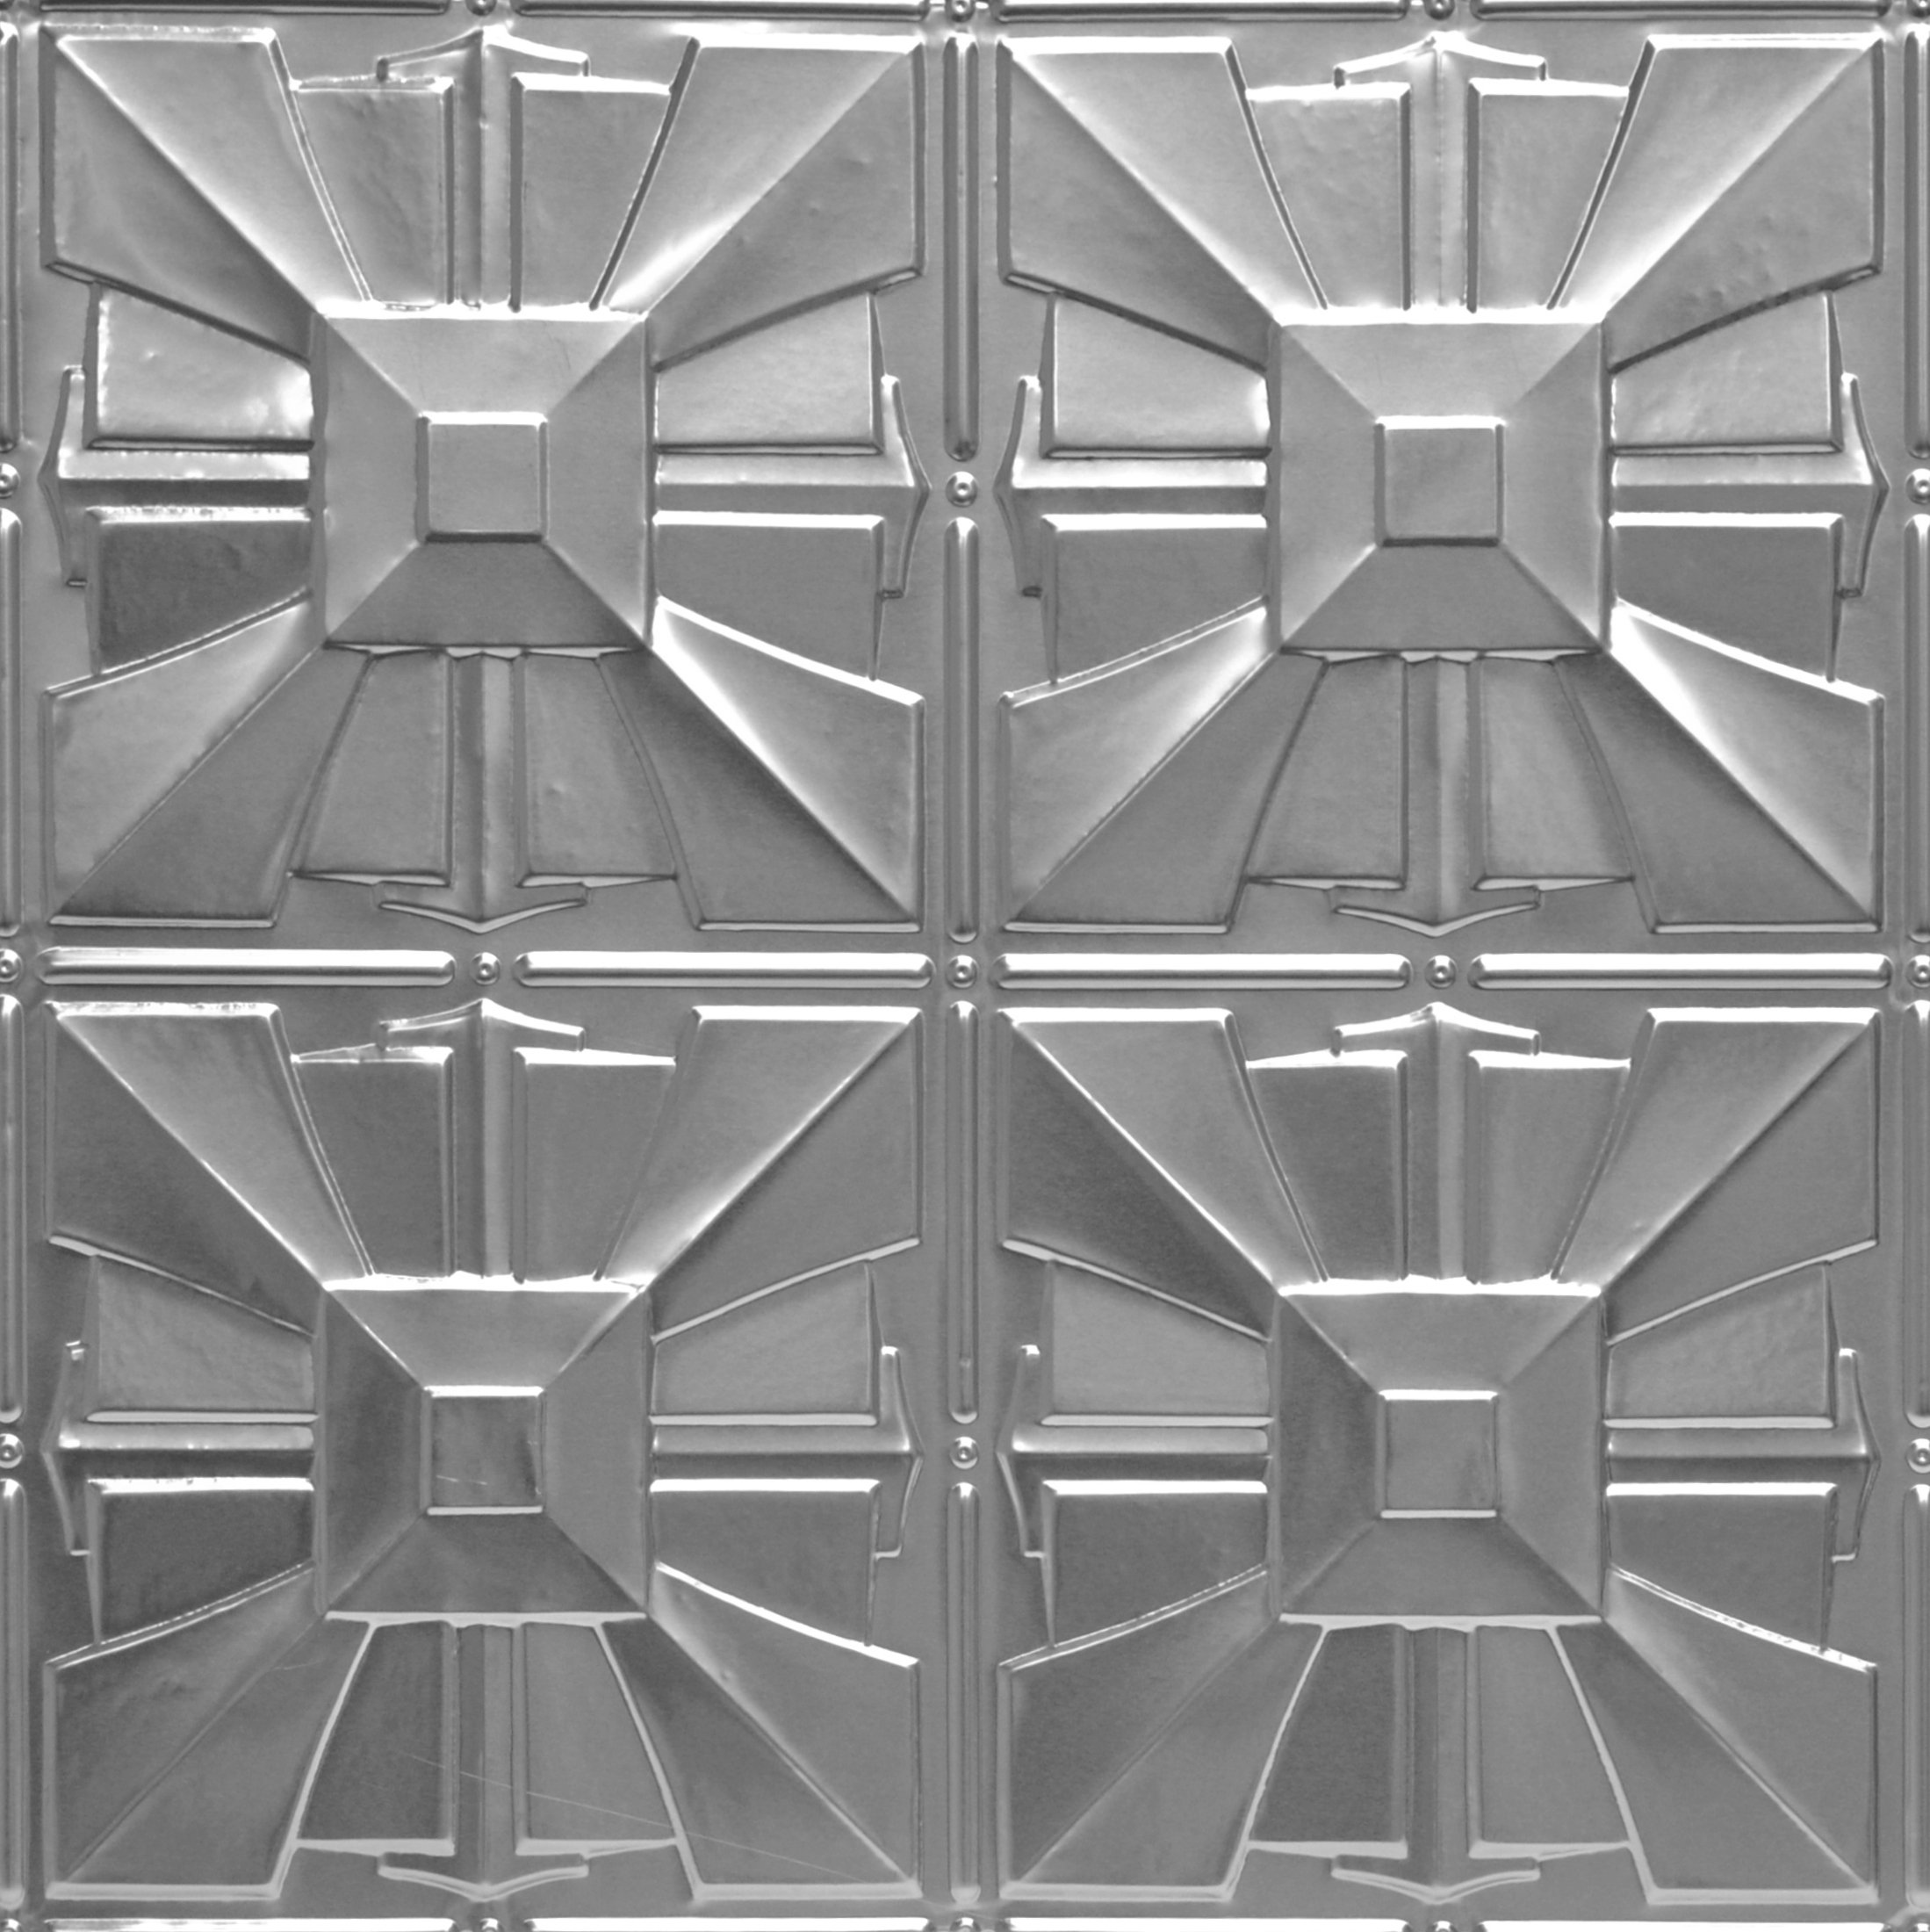 Shanko ST314DA Pattern 314 Authentic Pressed Metal Wall and Ceiling Tiles, 20 sq. ft., Unfinished Steel by Shanko (Image #1)